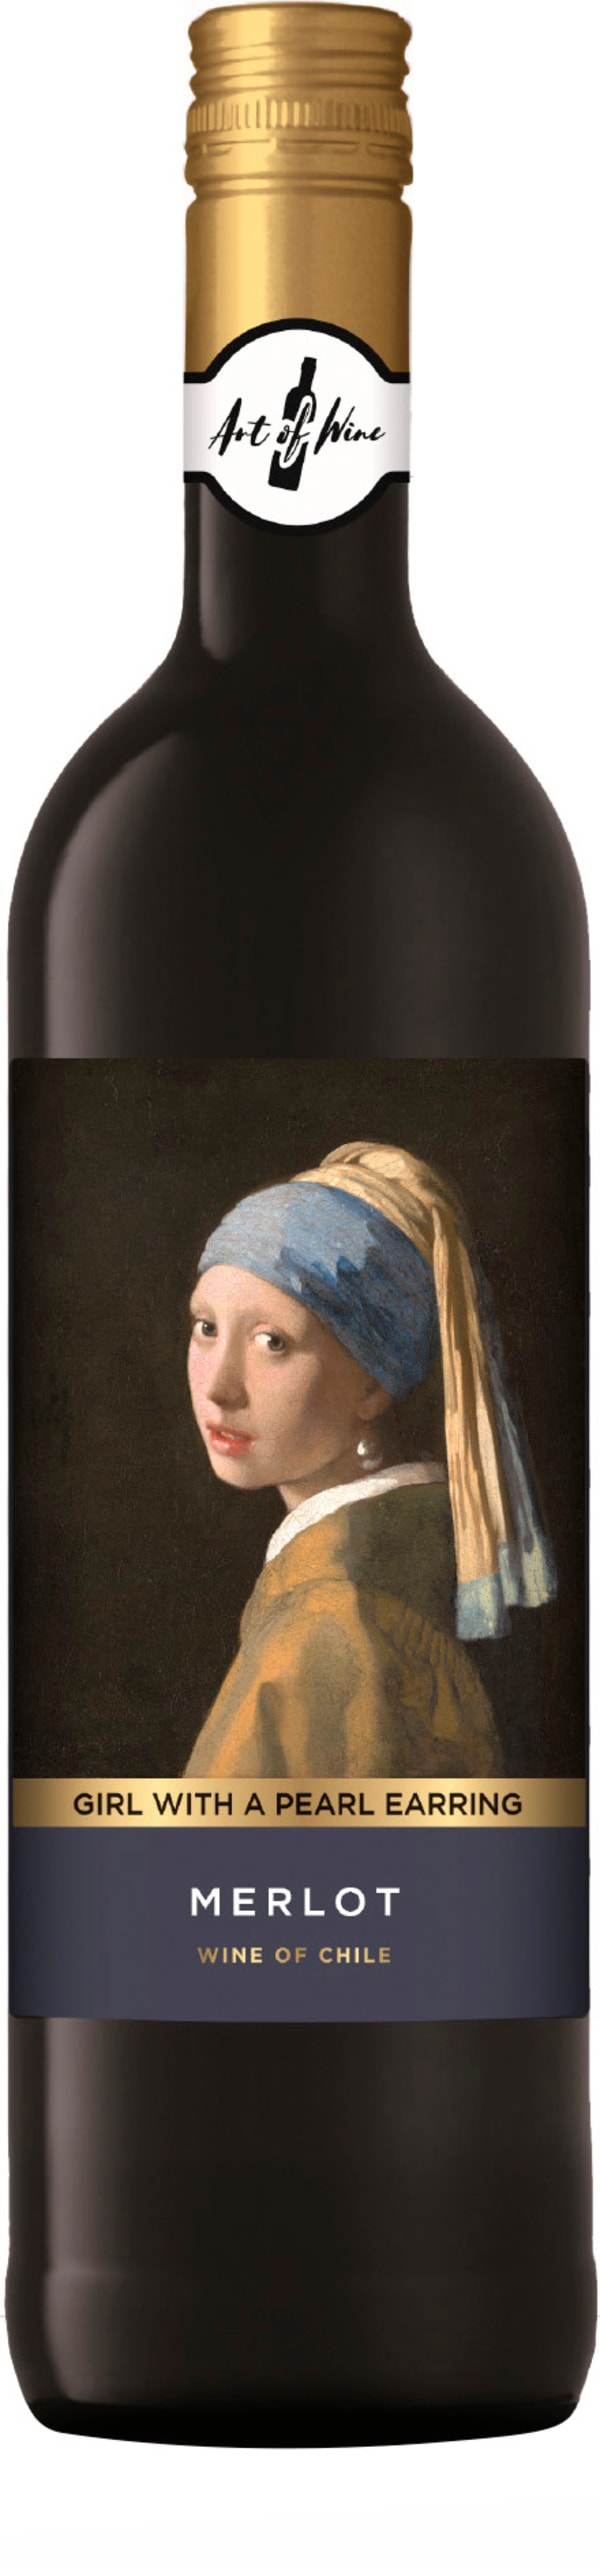 Girl With A Pearl Earring Merlot 2020